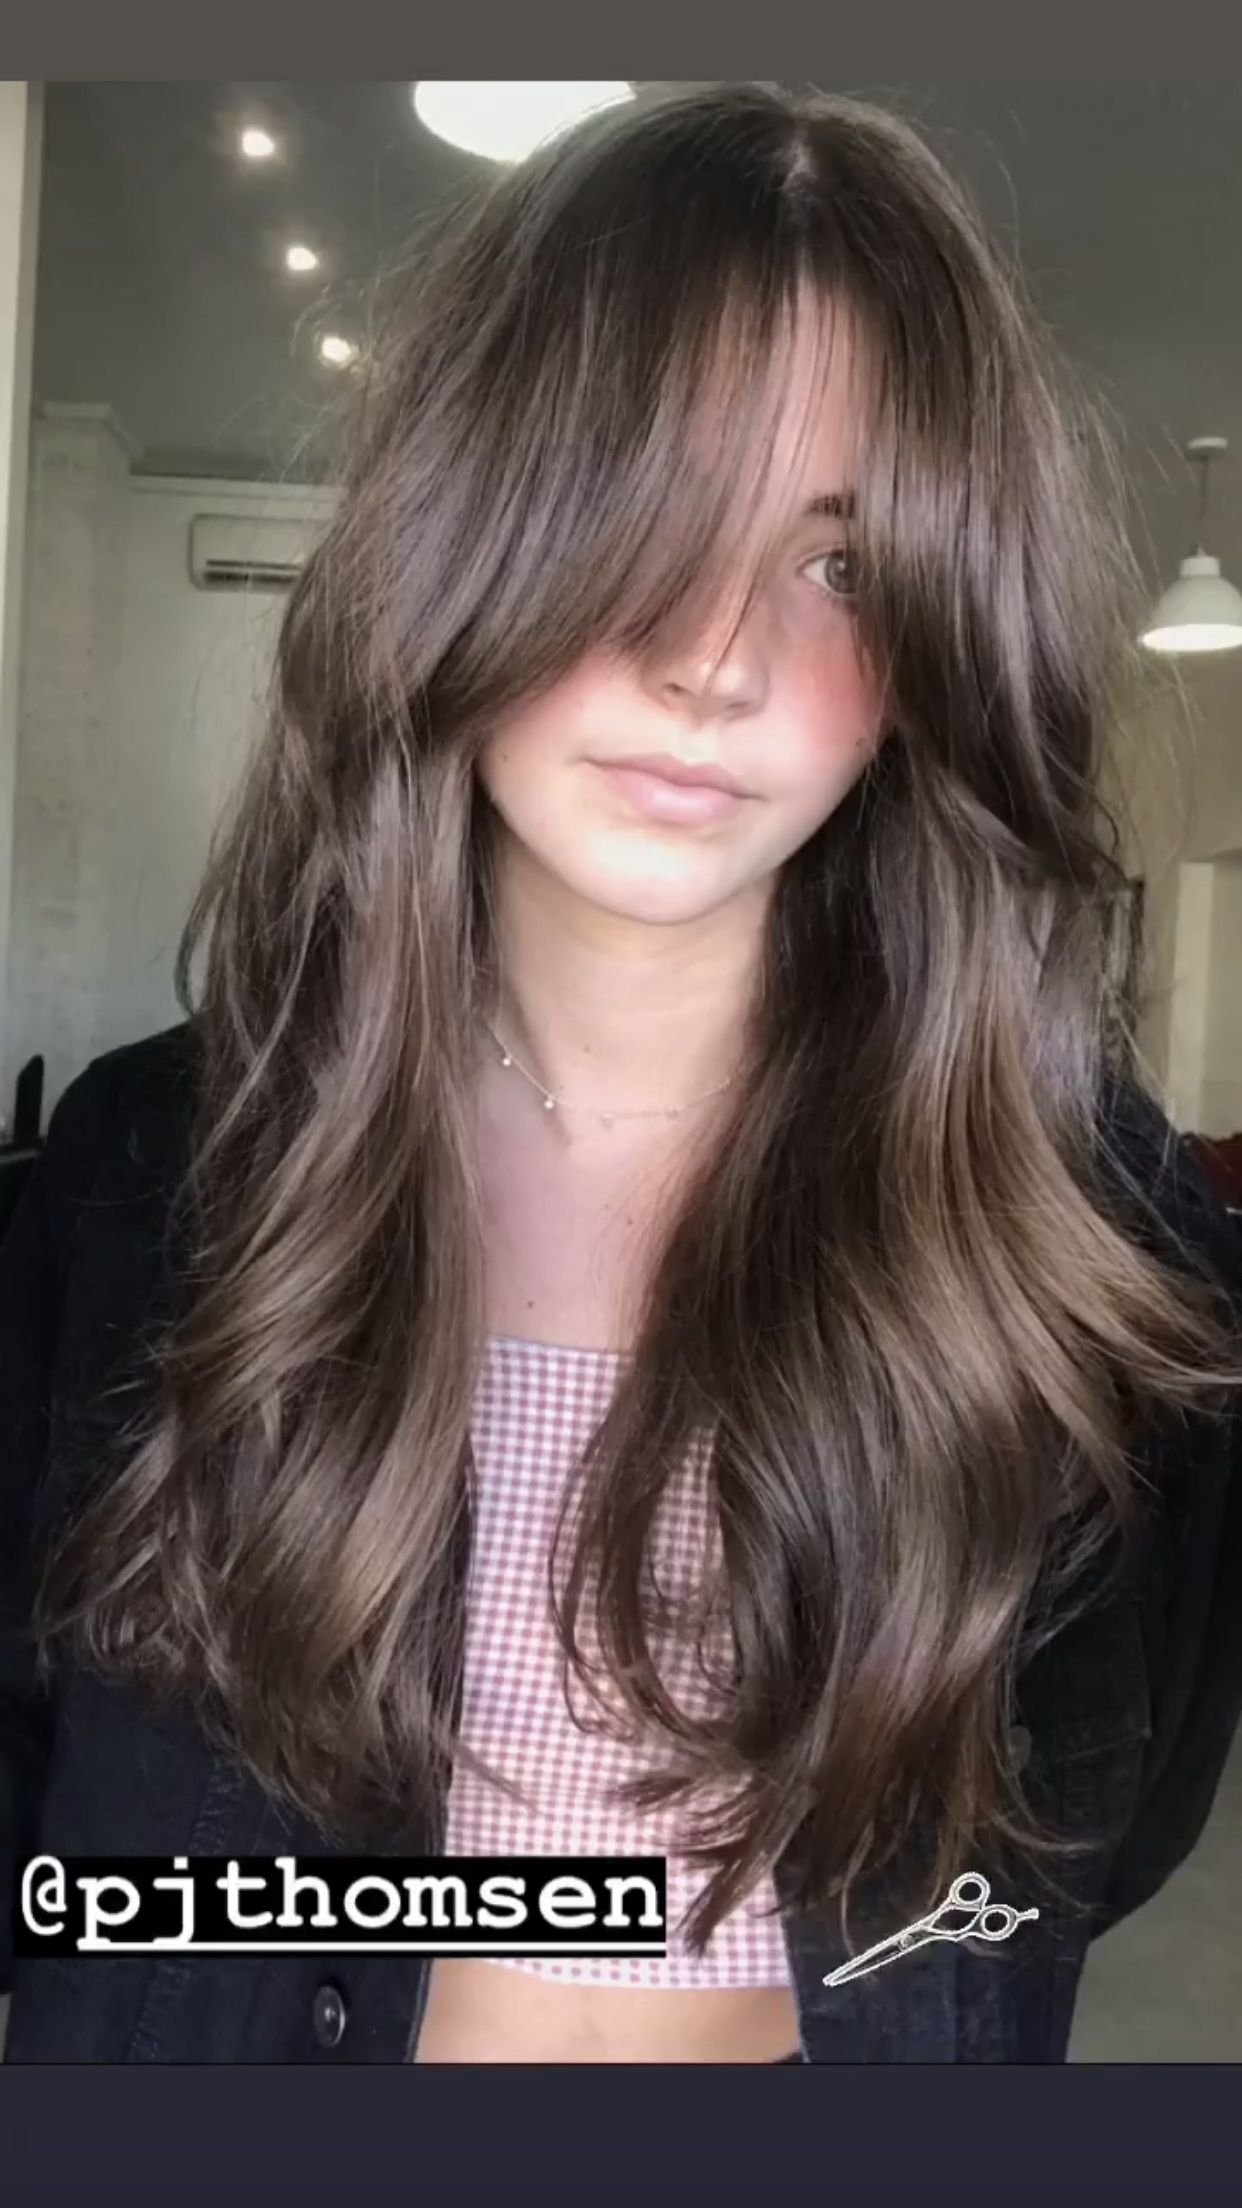 Dark Brunette One Length Lob With Long Curtain Bangs And Textured Ends The Latest Hairstyles For Men And Women 2020 Hairstyleology Brunette Hair Color Medium Length Hair Styles Short Hair With Bangs